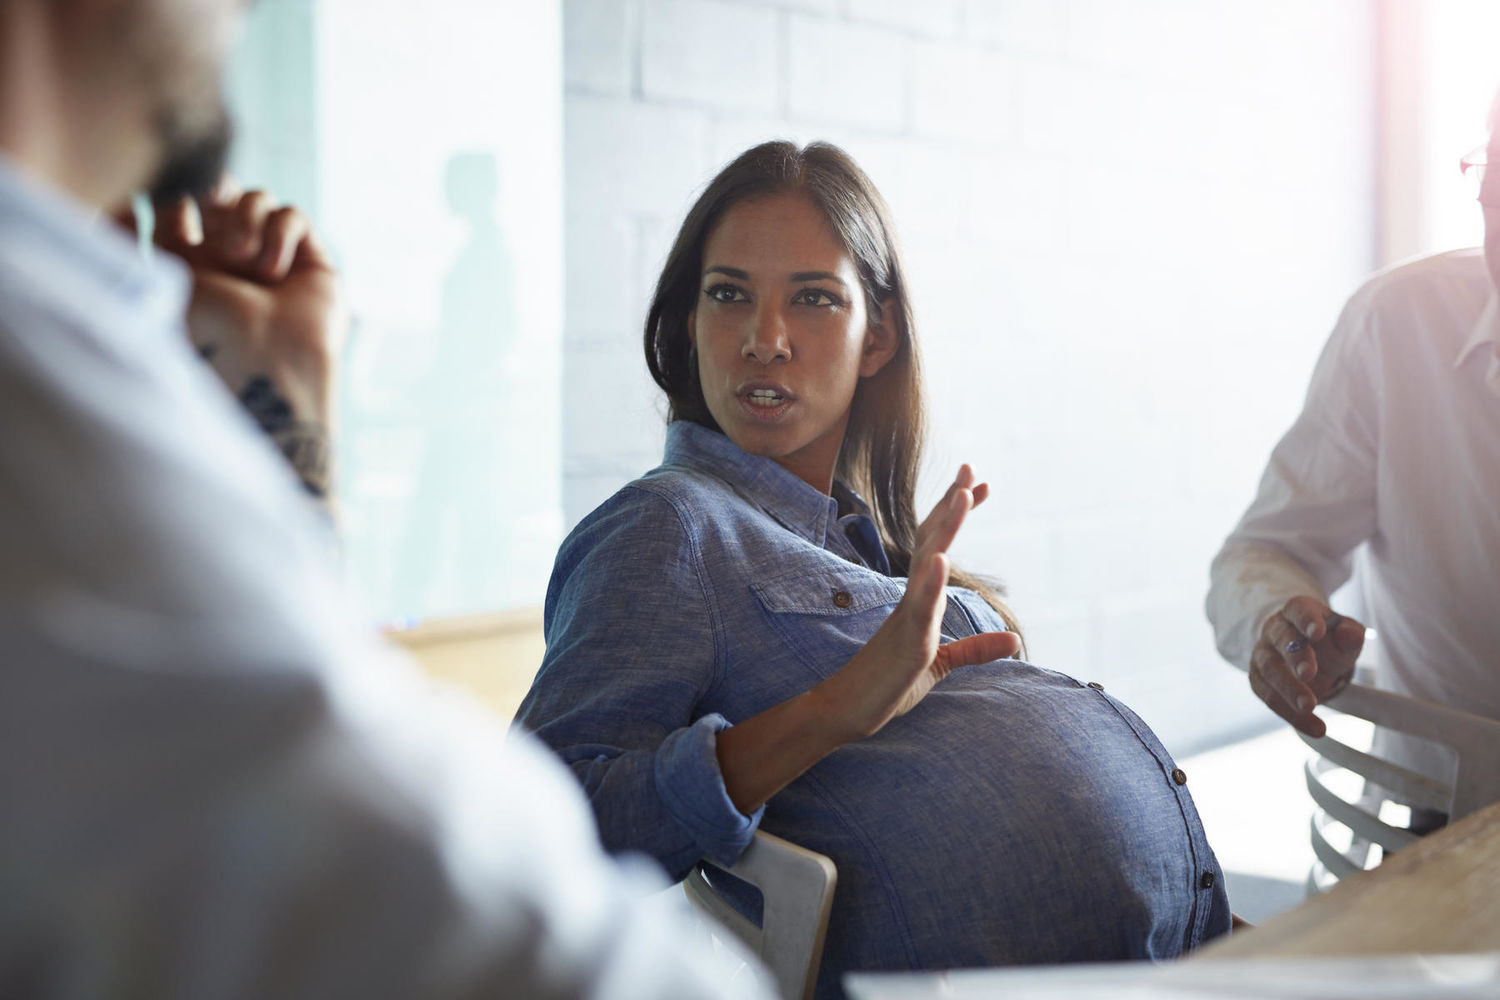 12 Things NOT to Say to a Preggo